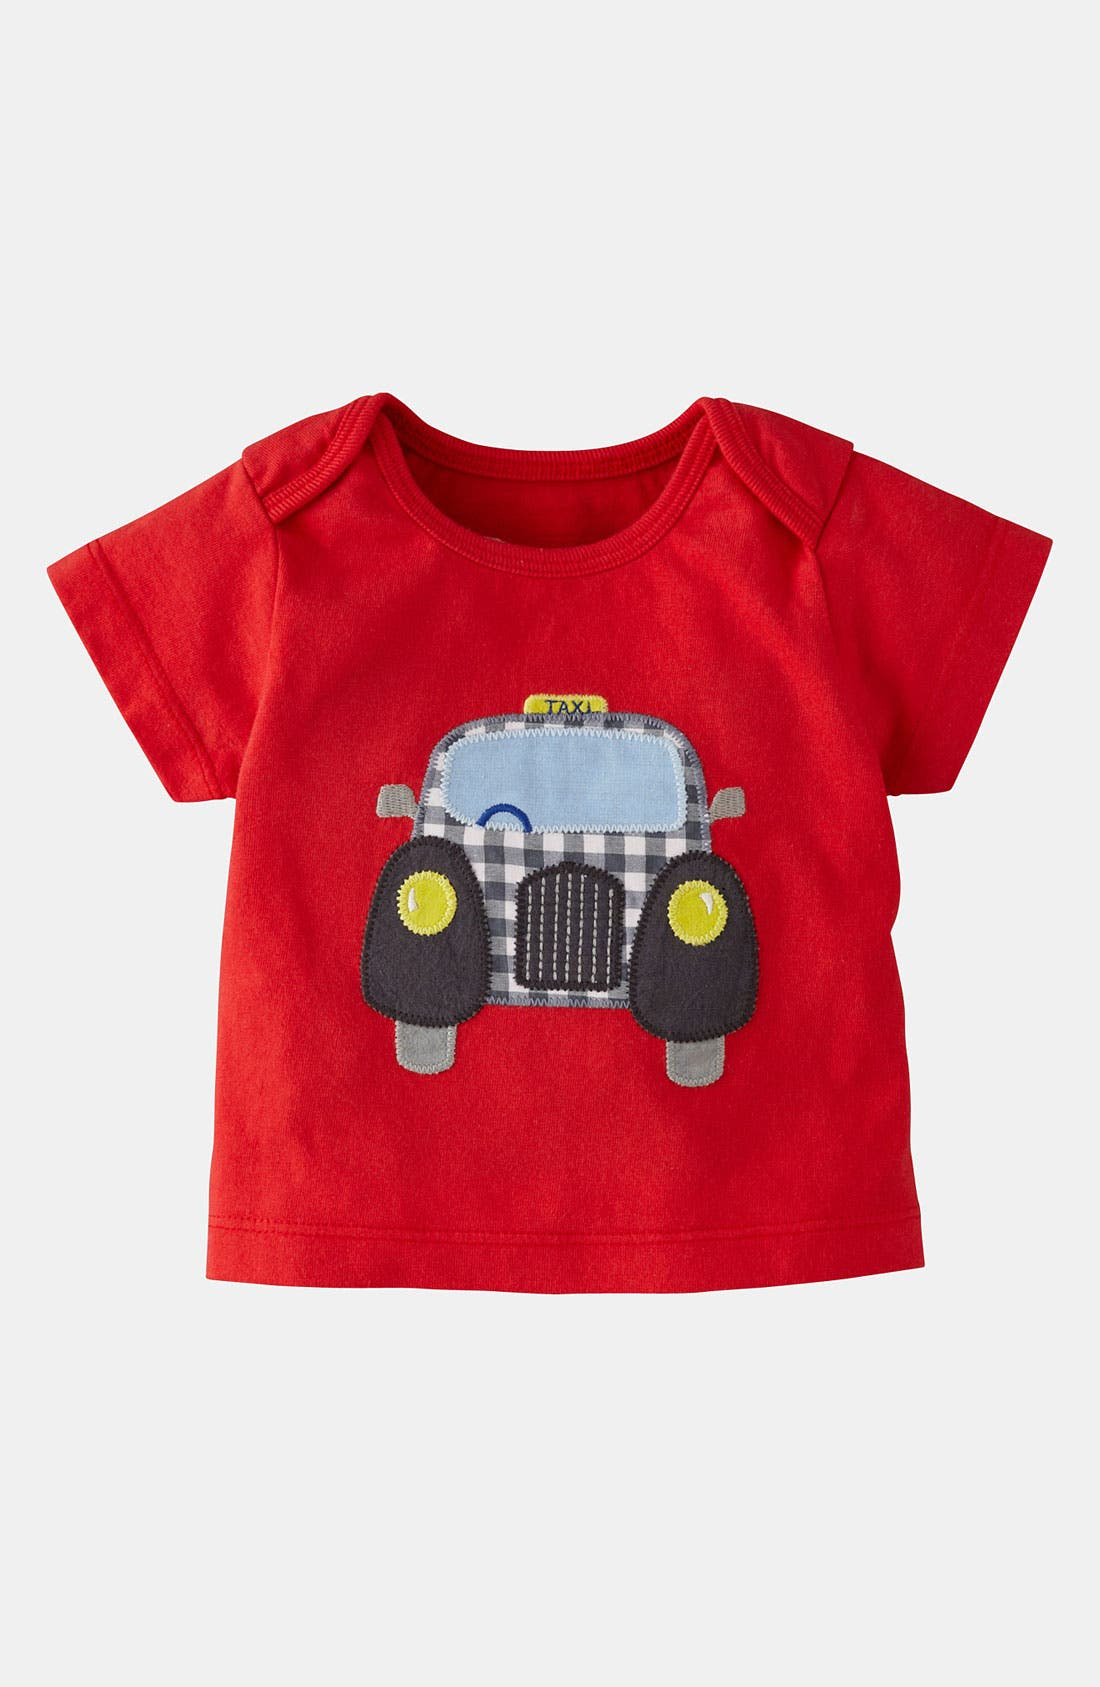 Alternate Image 1 Selected - Mini Boden 'Vehicle Appliqué' T-Shirt (Baby)